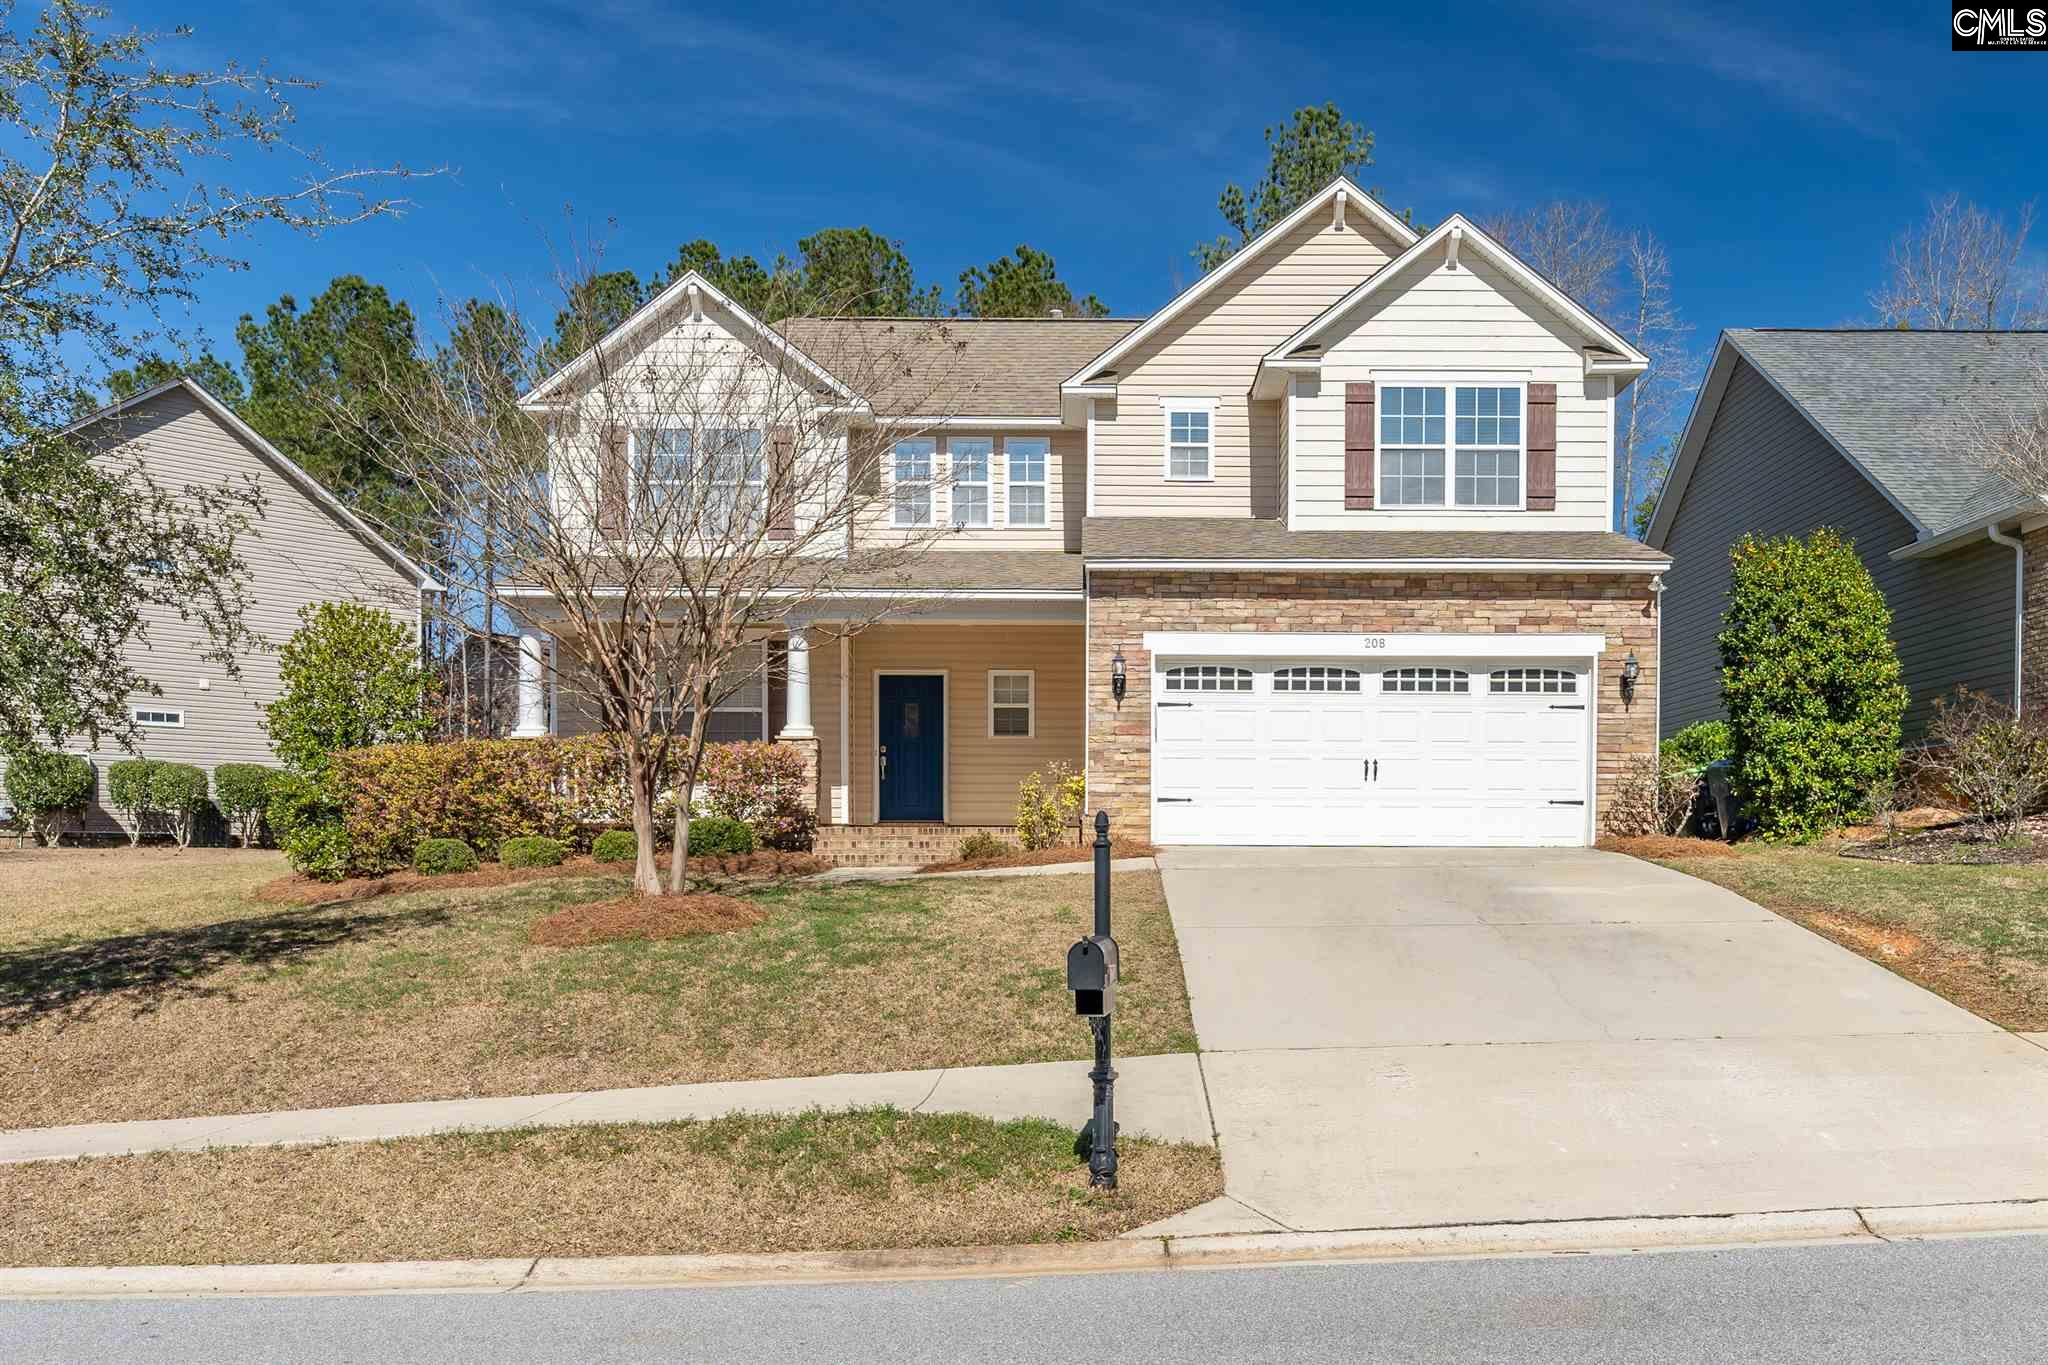 208 Allenbrooke Lexington, SC 29072